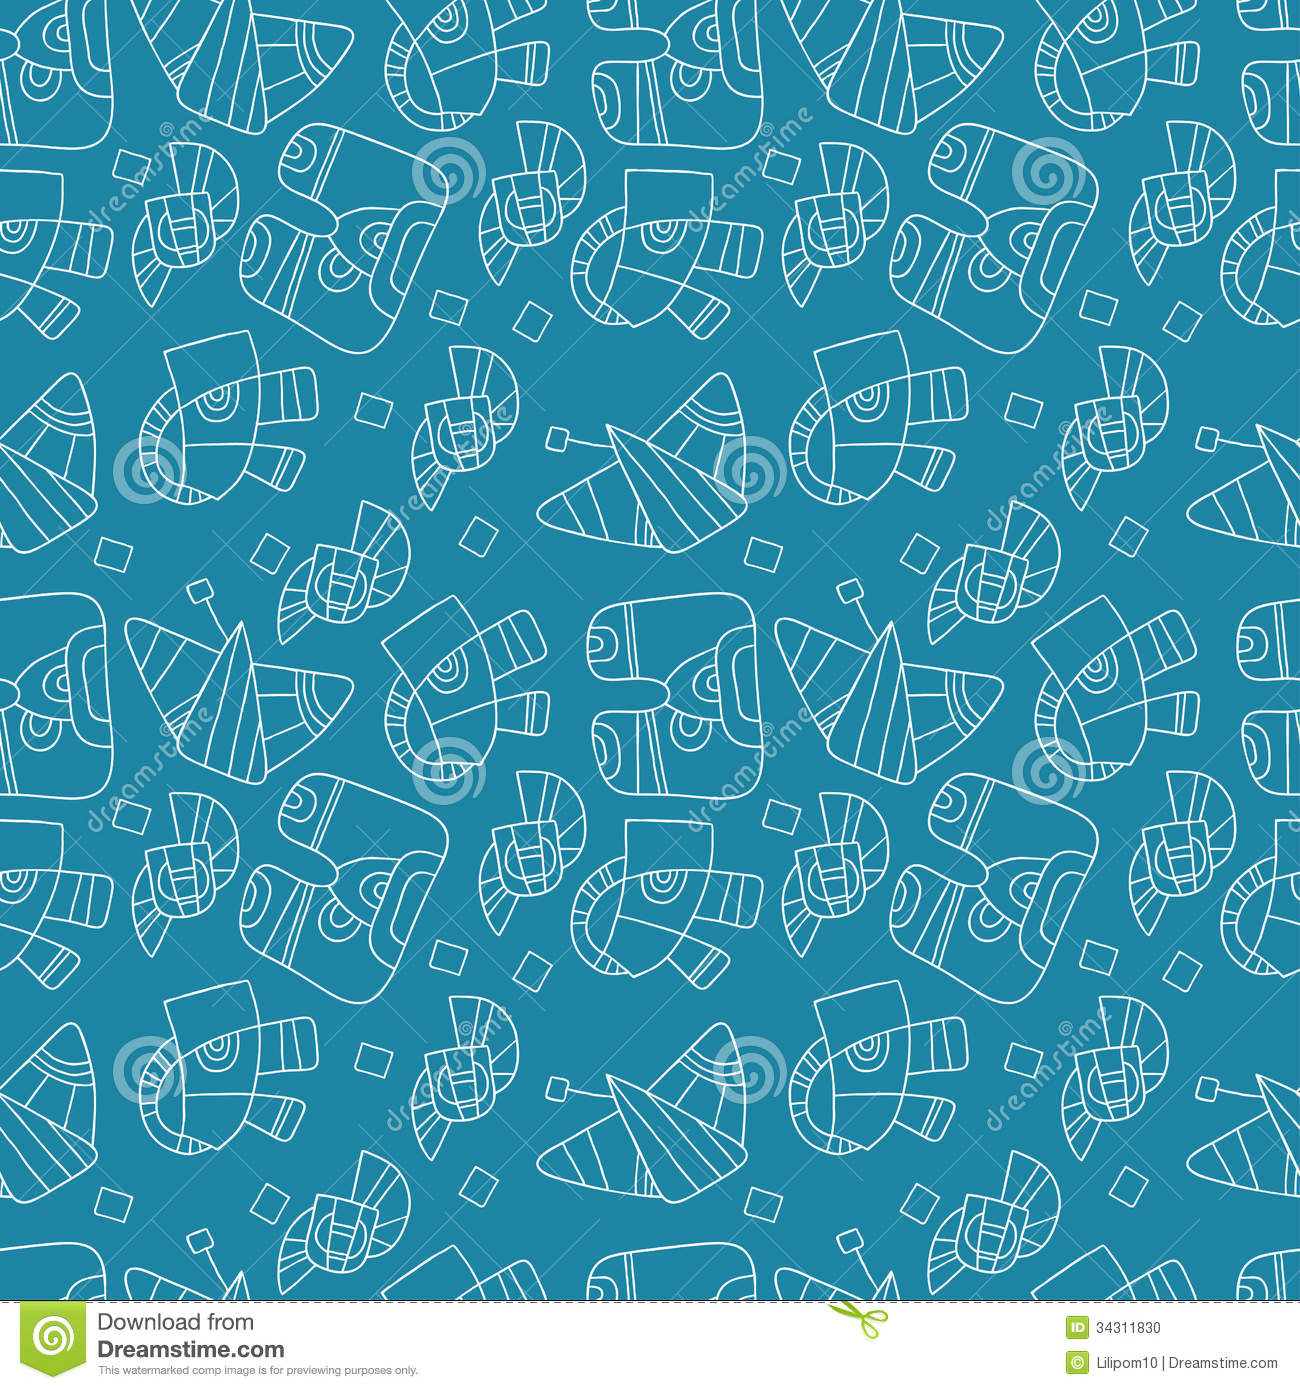 Seamless background patterns for websites